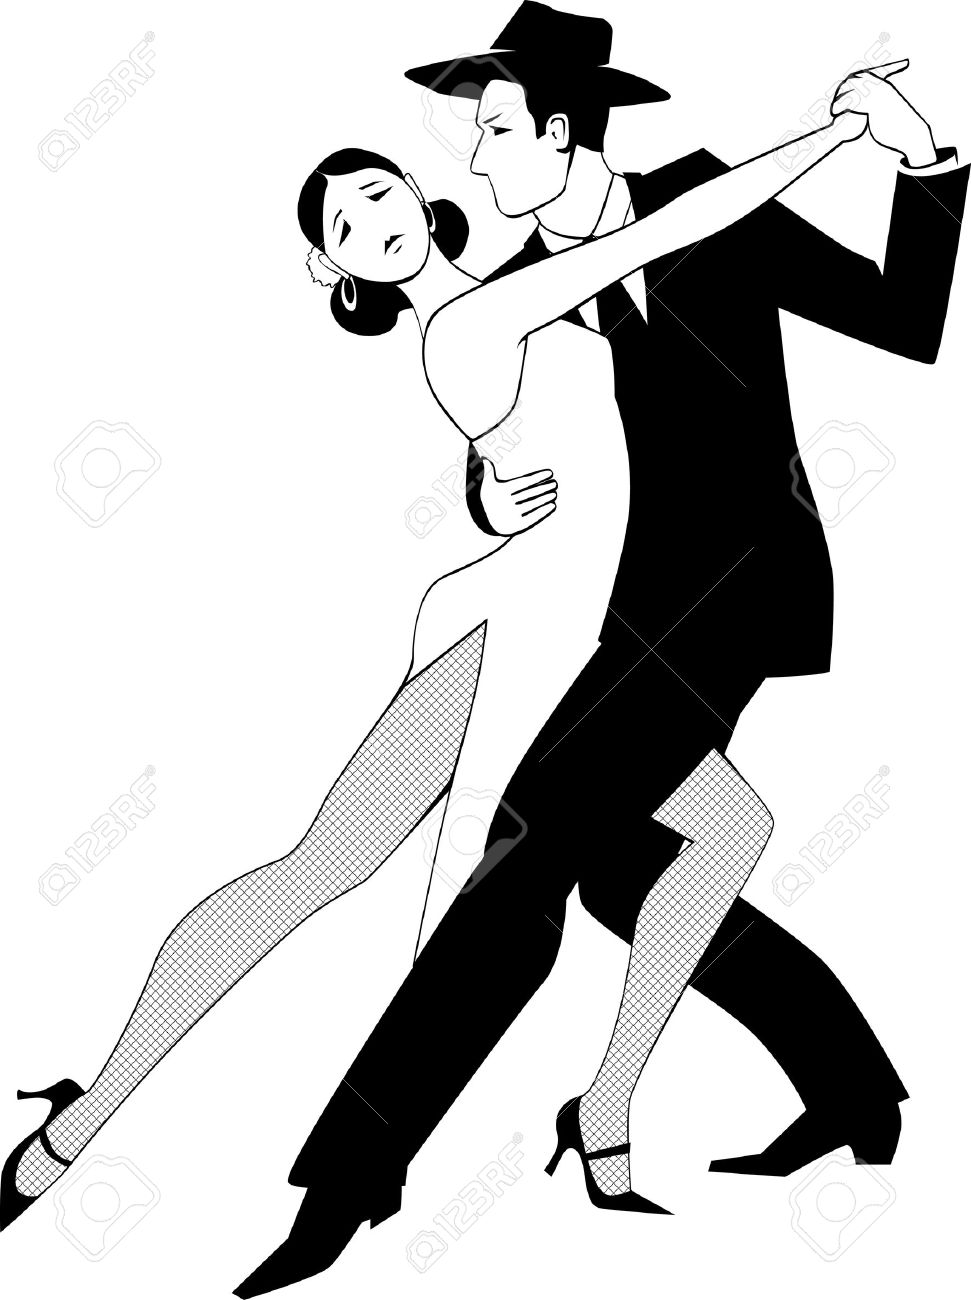 Tango Clip Art Royalty Free Cliparts, Vectors, And Stock.